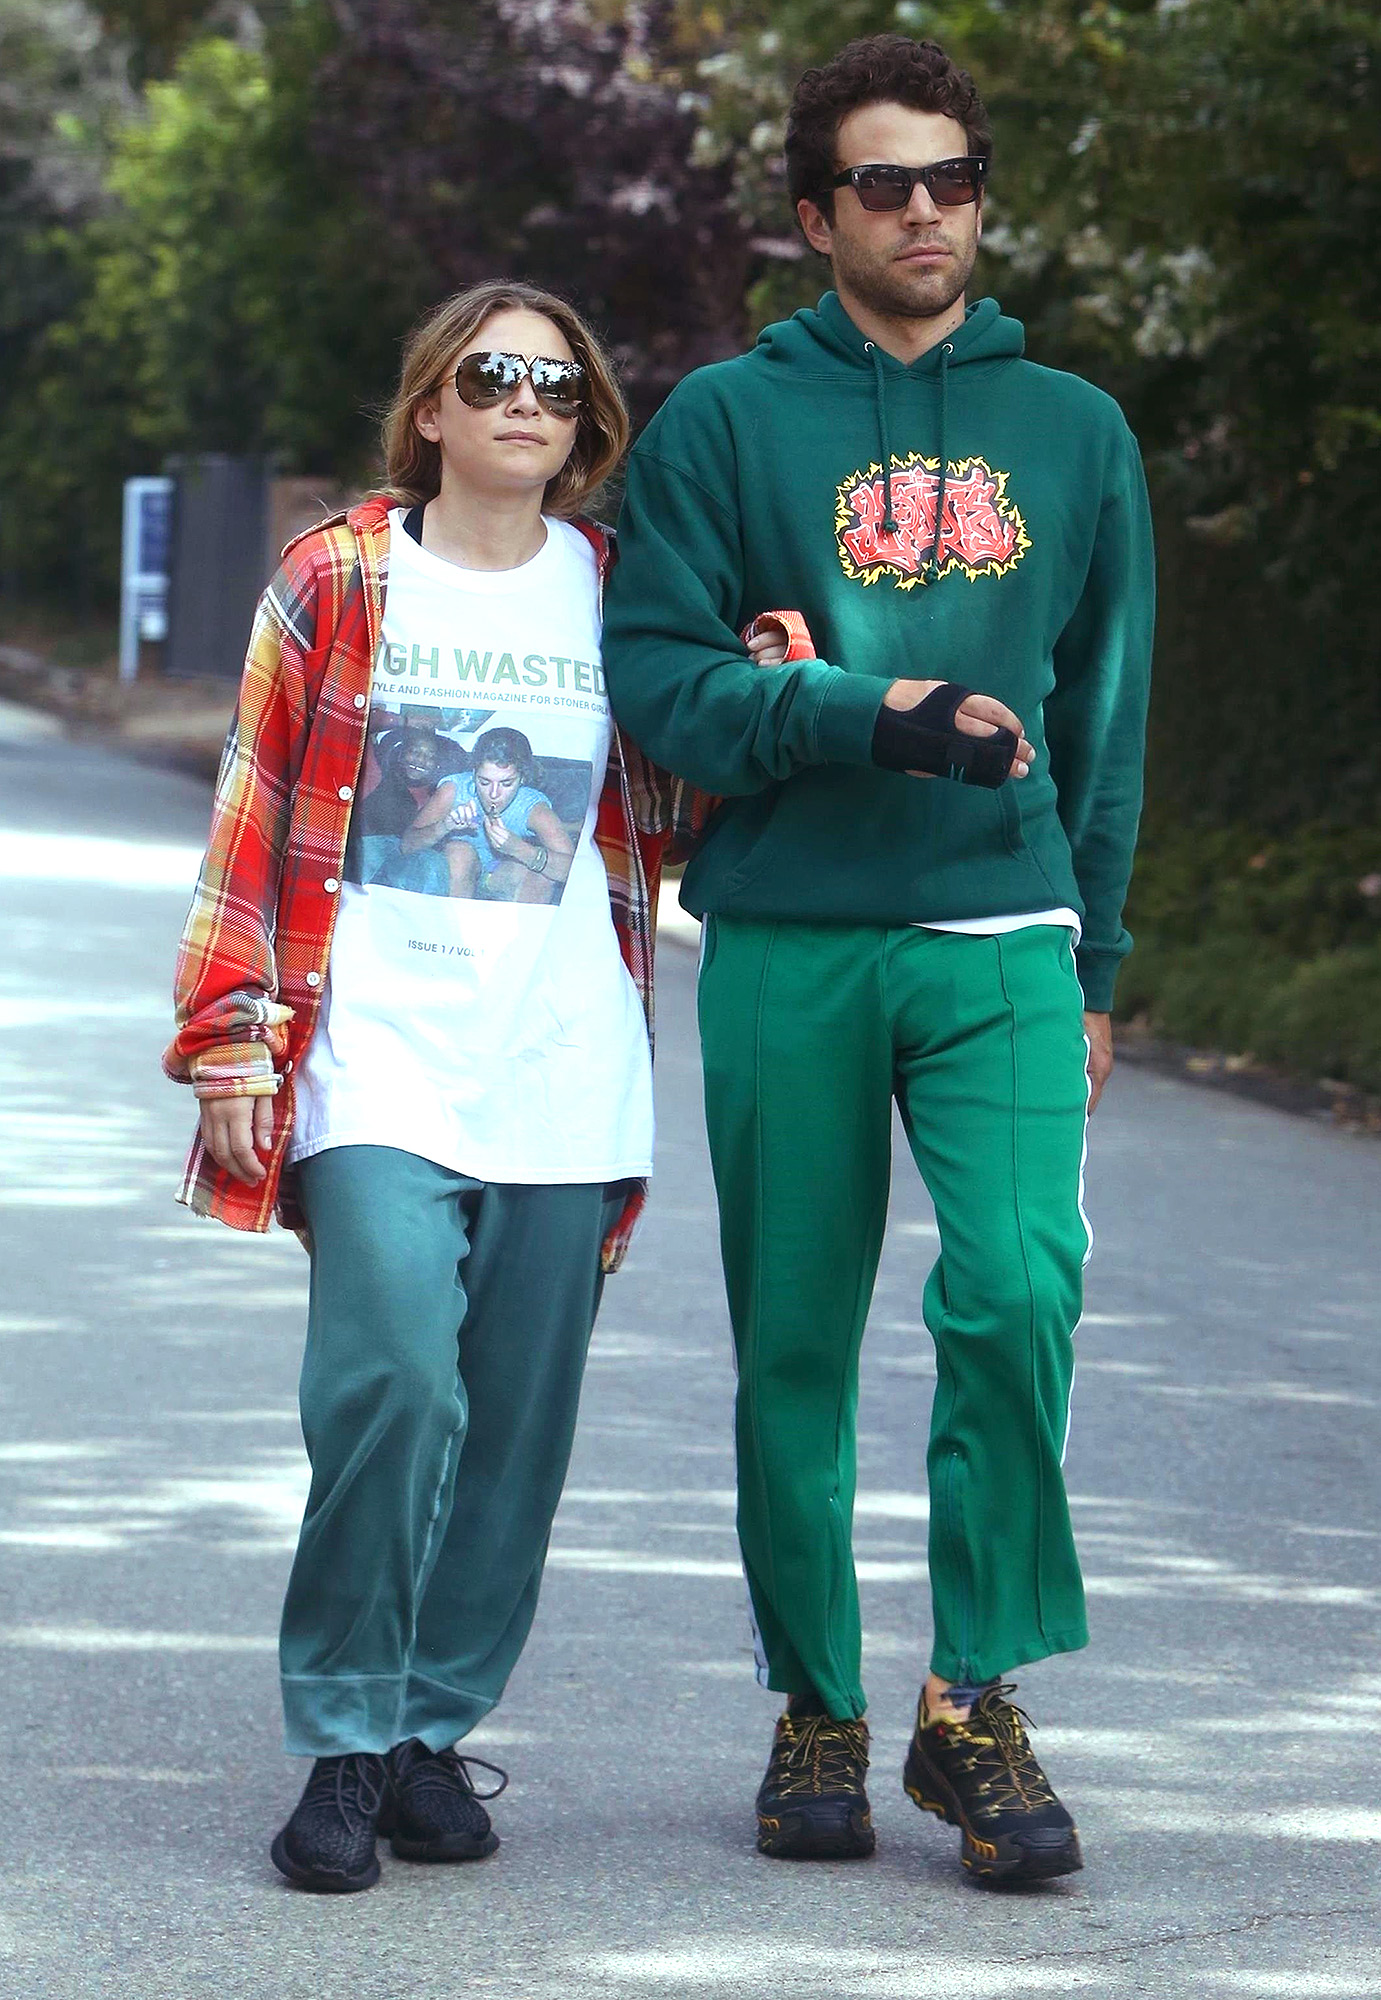 *EXCLUSIVE* Ashley Olsen clutches onto a mystery man's arm while out for a walk